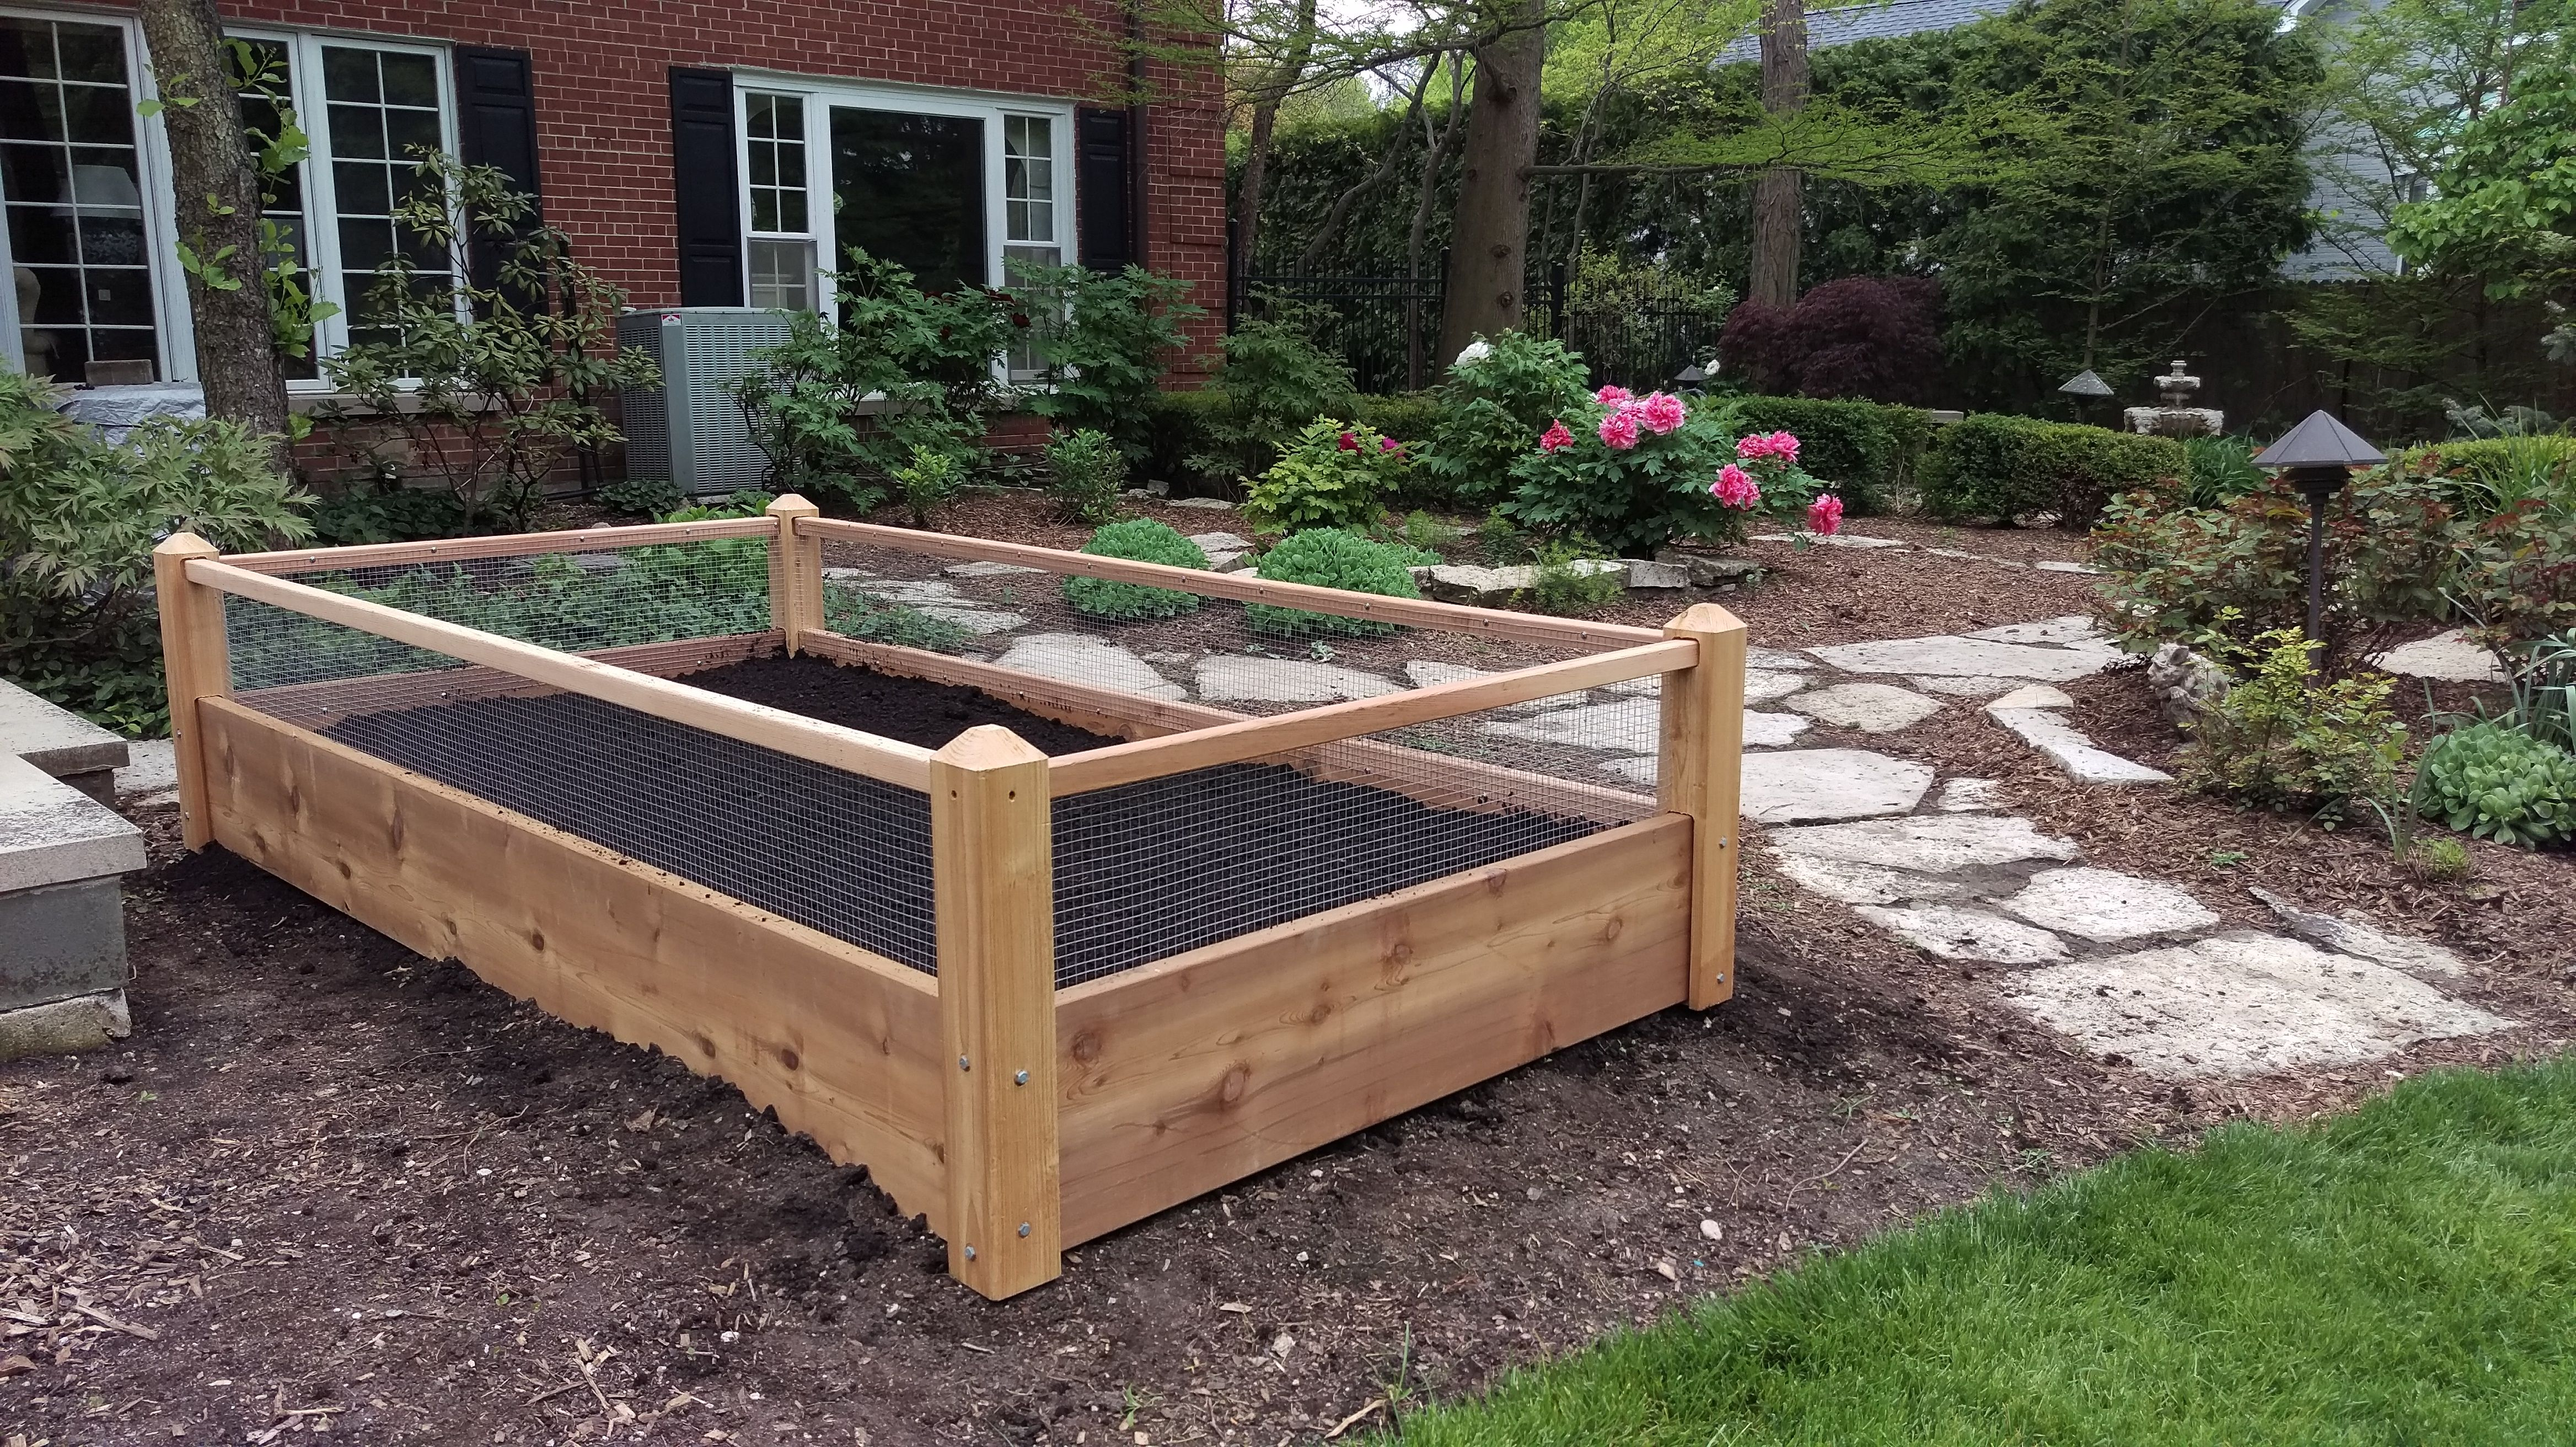 One 3x8x2 Raised Garden Bed with Rabbit Railings Delivered